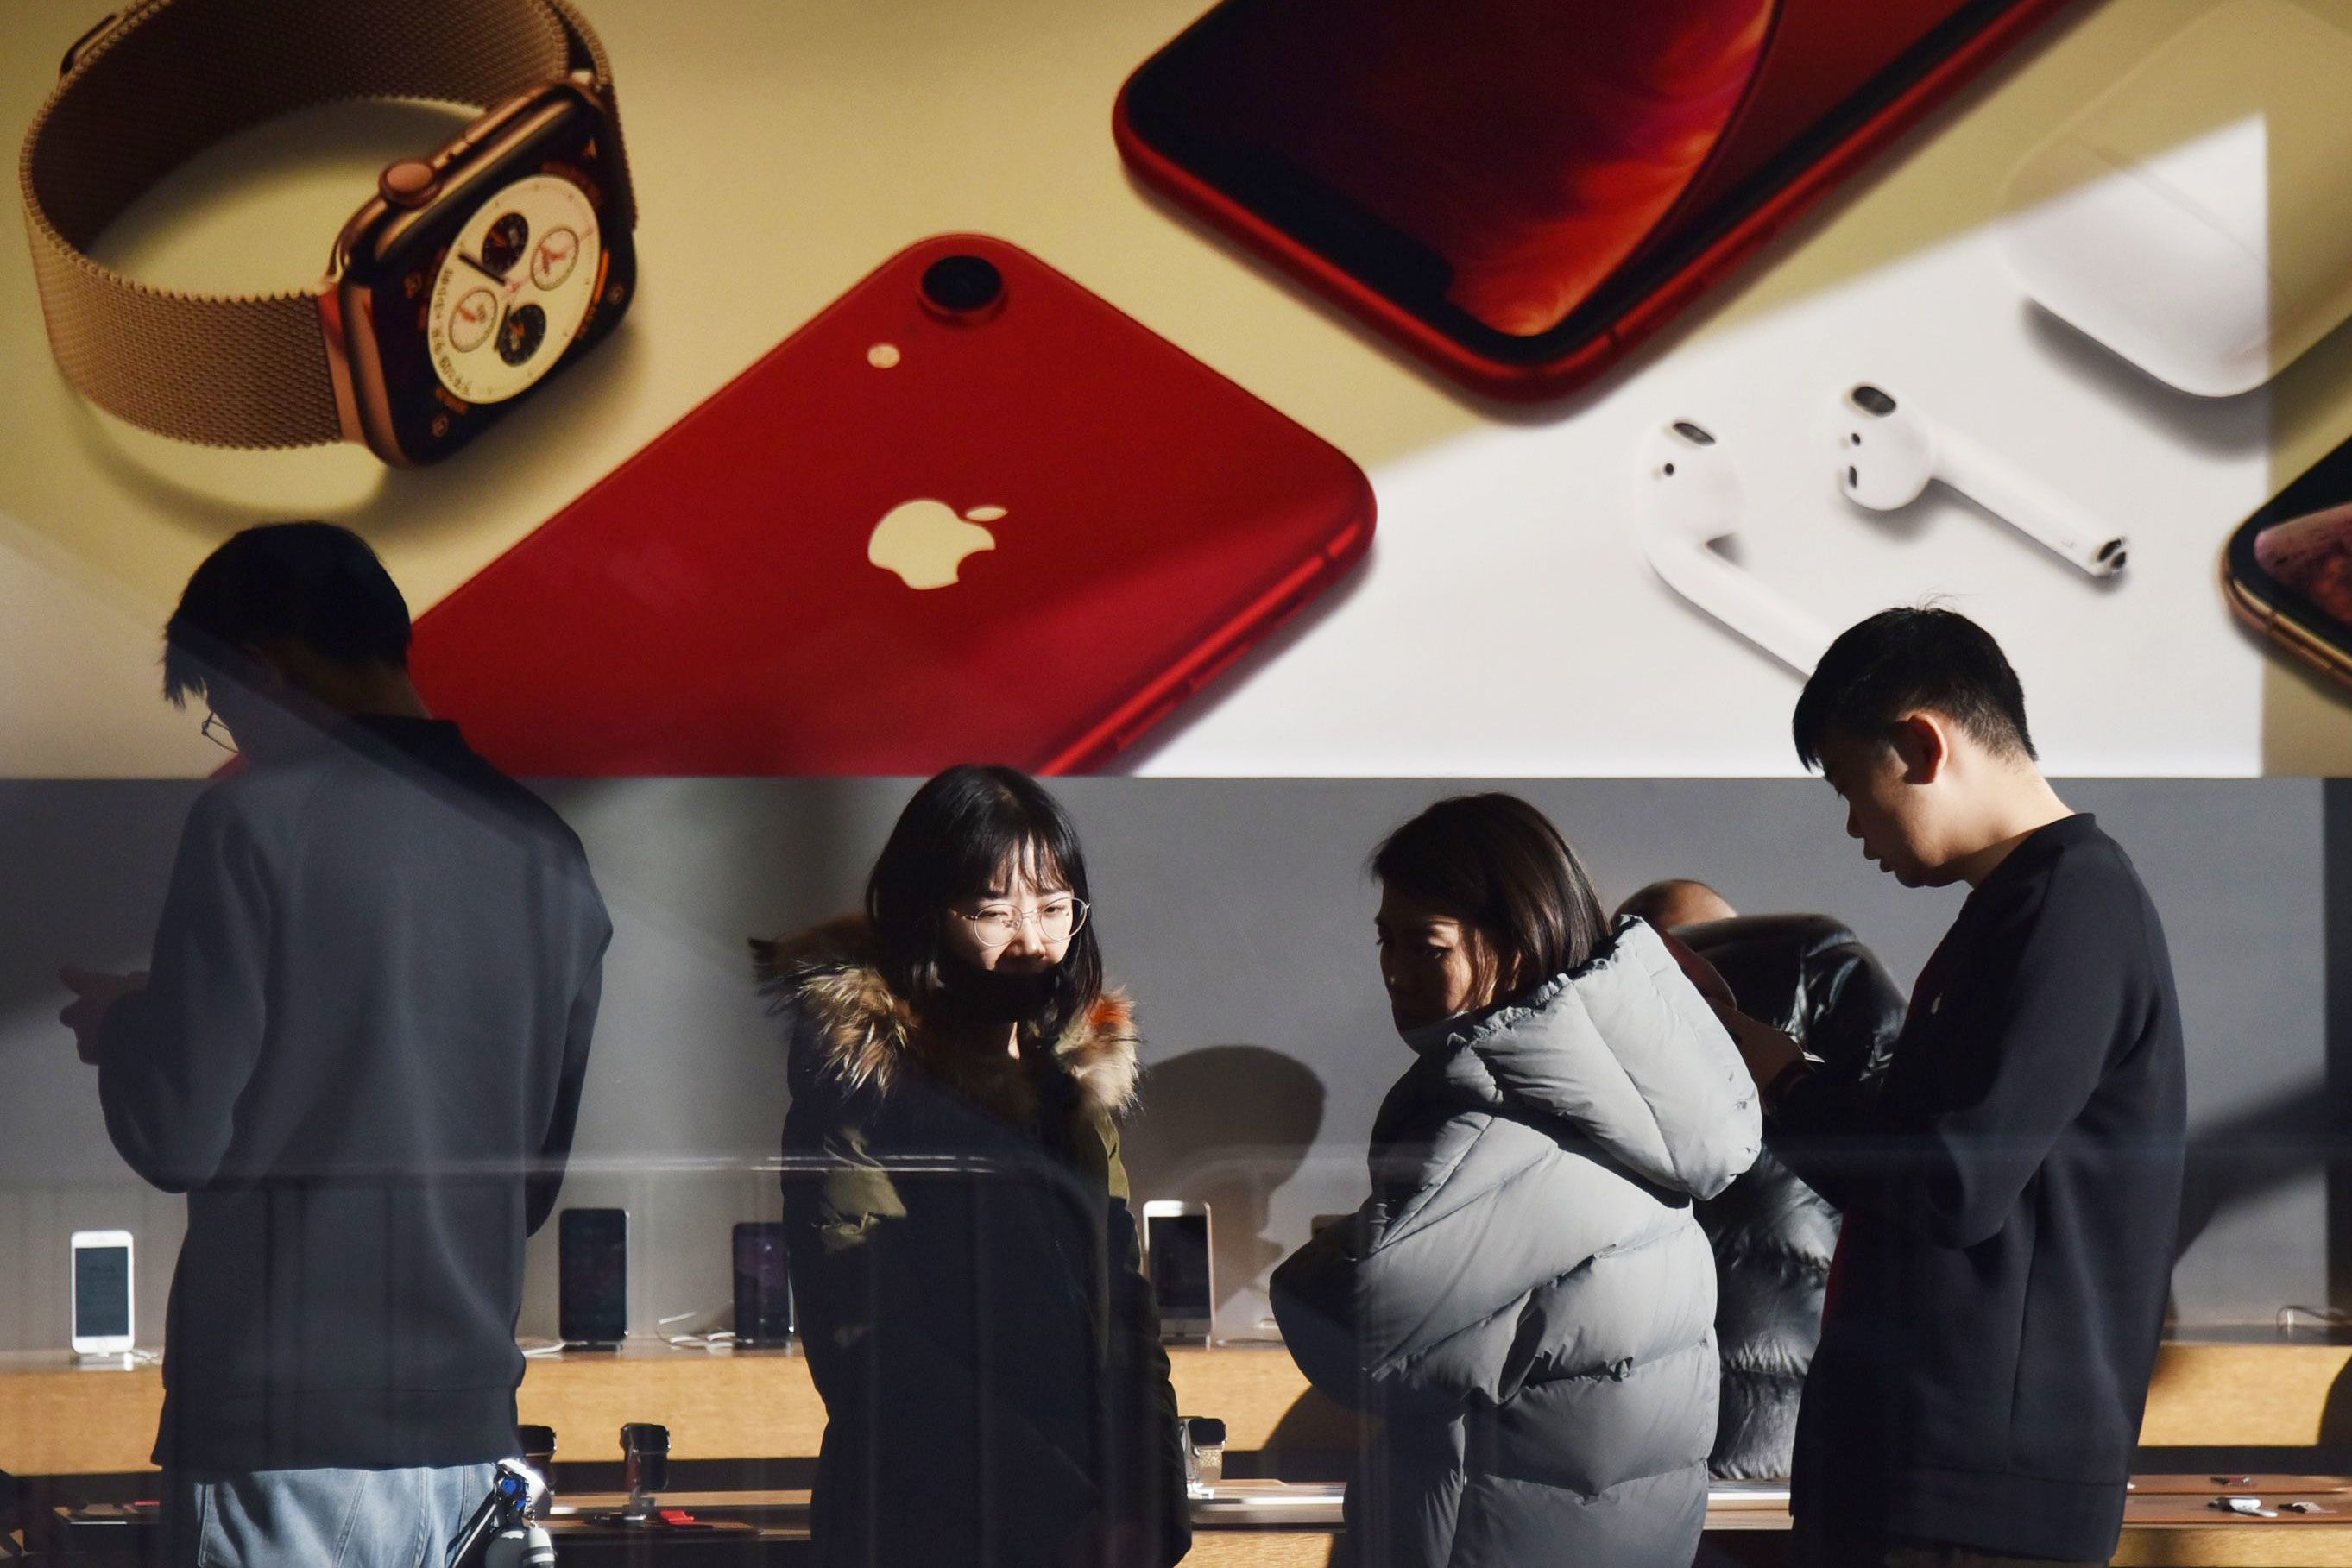 A growing number of Chinese consumers are switching from Apple's iPhone, paper says